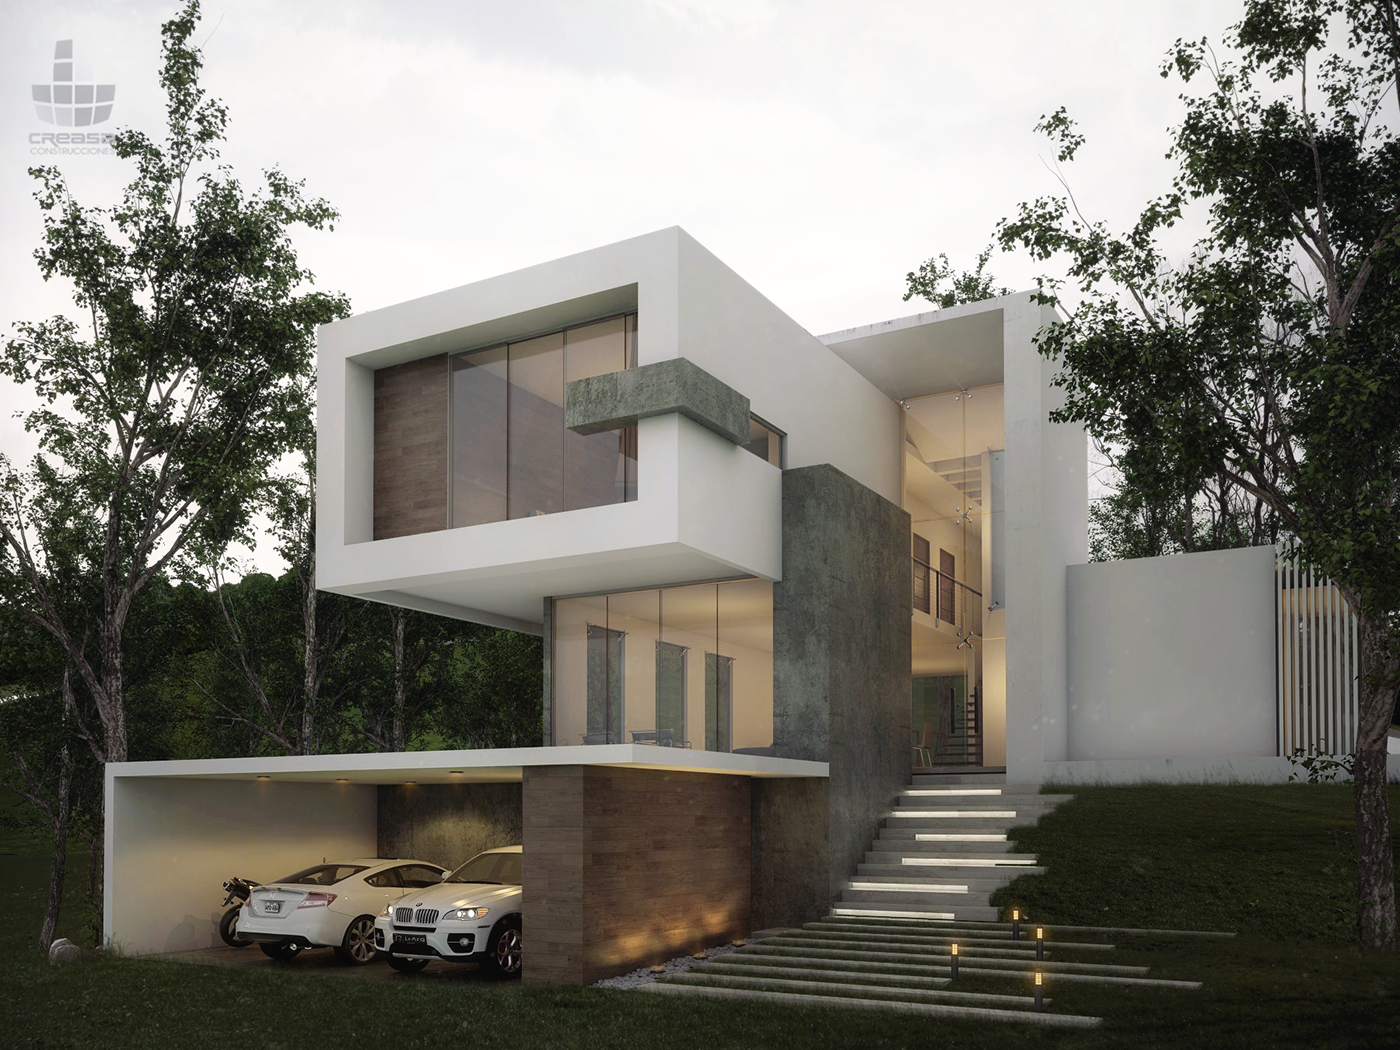 Forest house on behance for Modern forest house design